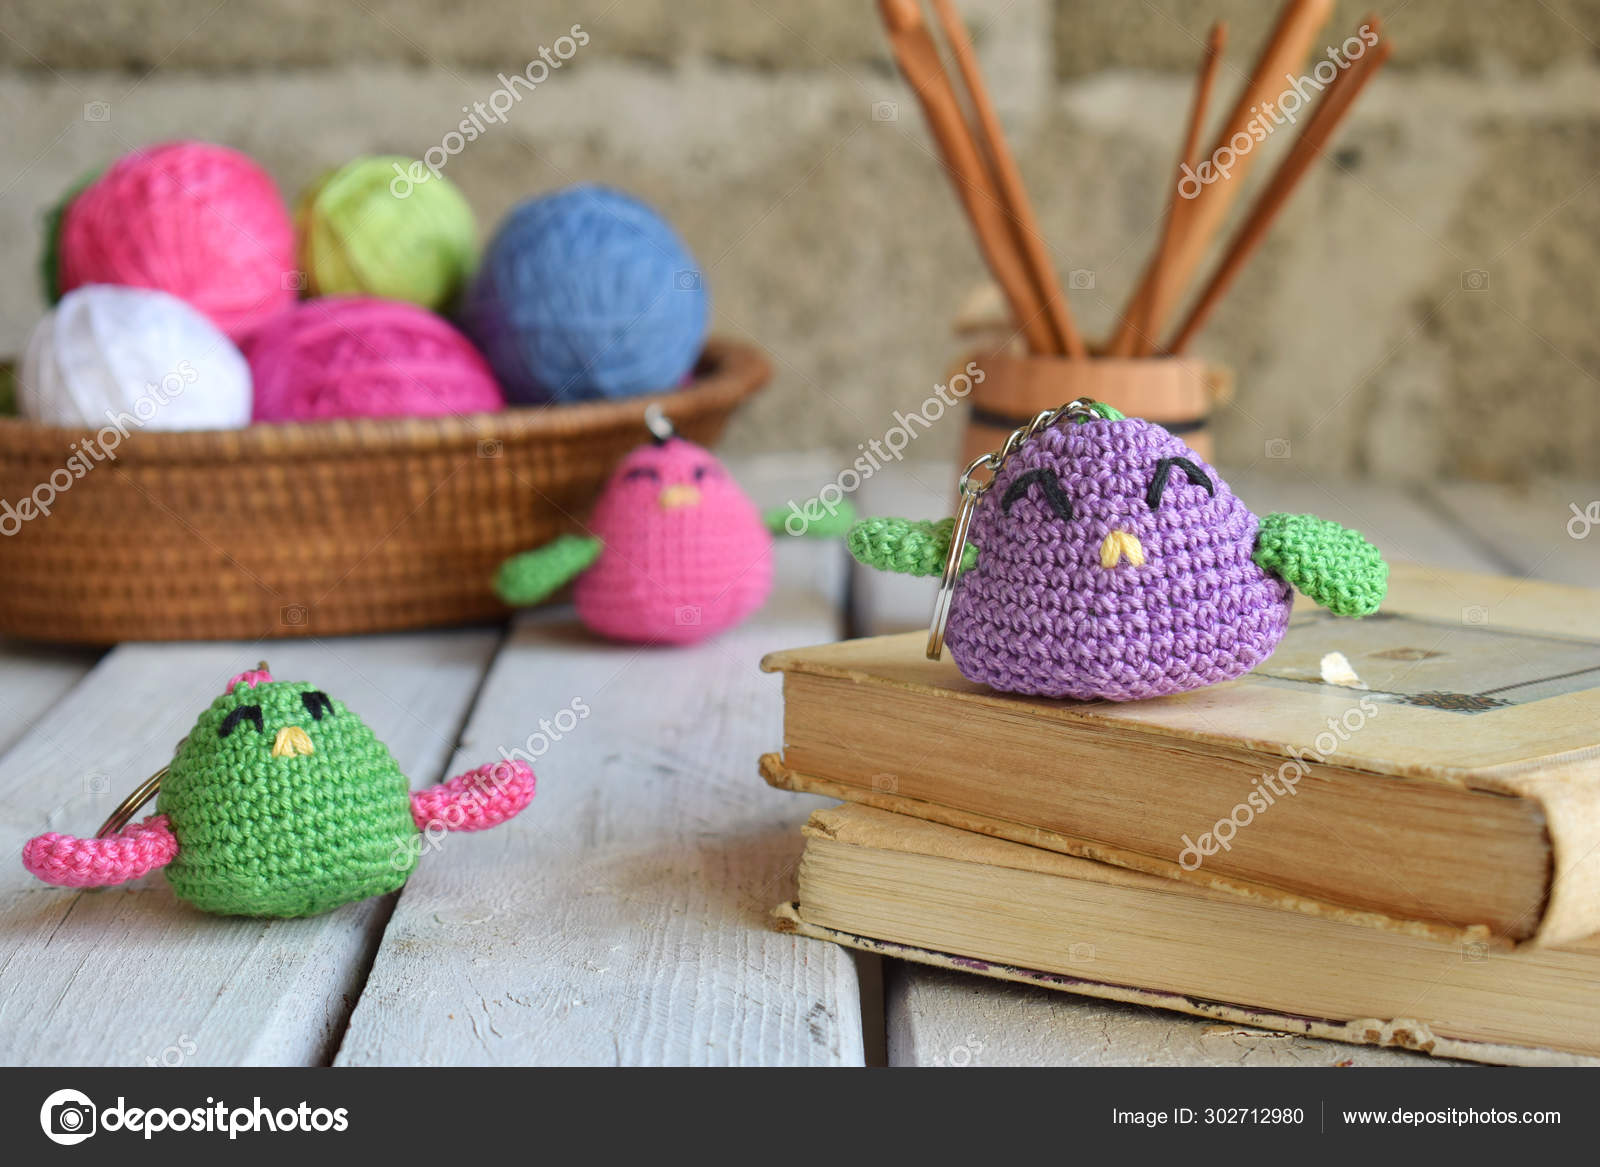 Colored Crochet Bird Toy For Babies Or Trinket Handmade